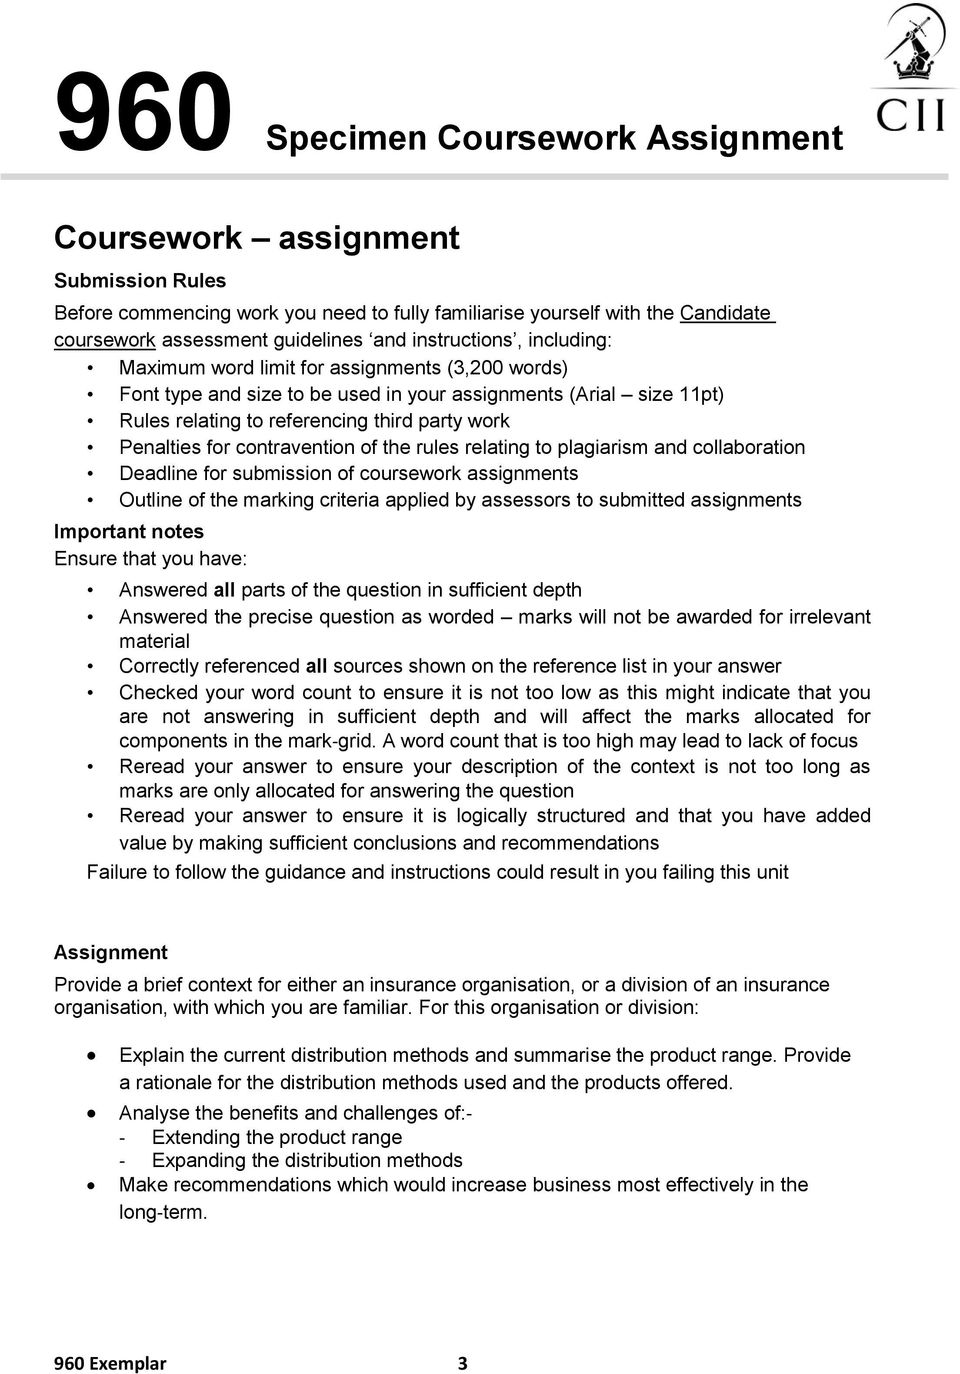 cii candidate coursework assessment guidelines and instructions